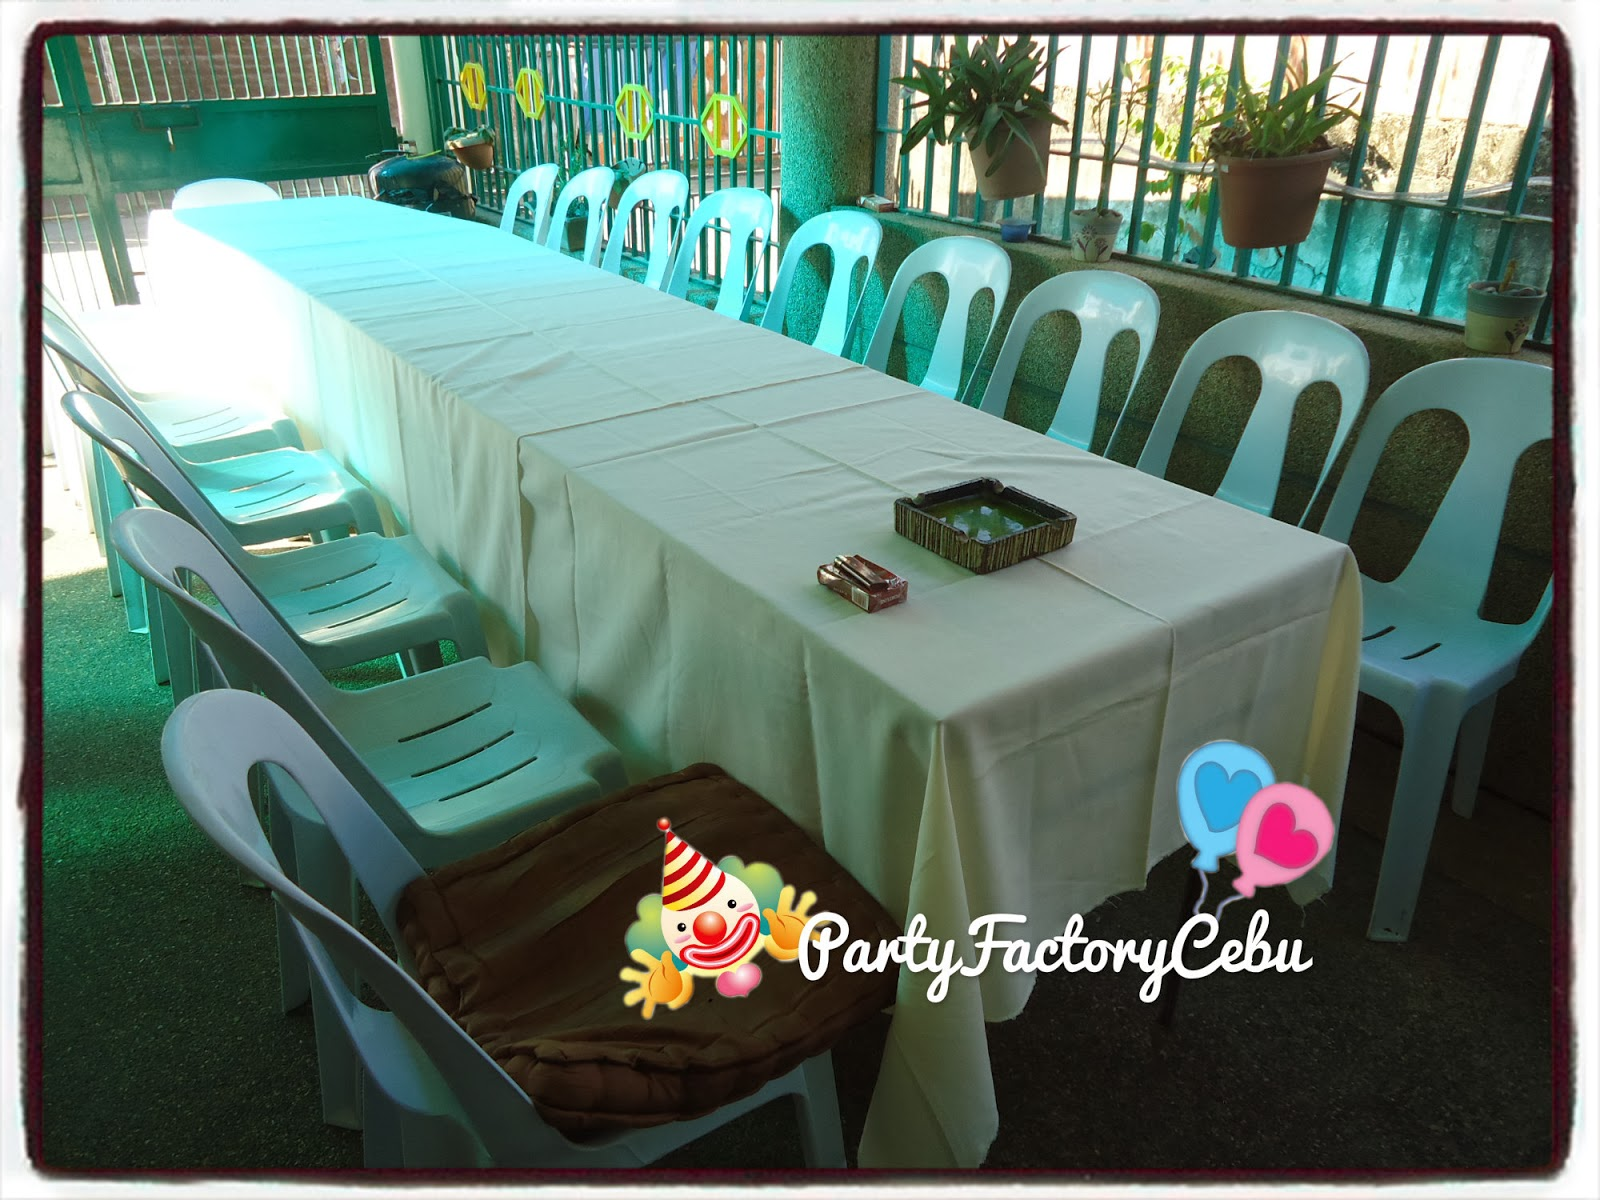 Welcome To Partyfactory Cebu Tables And Chairs Rentals